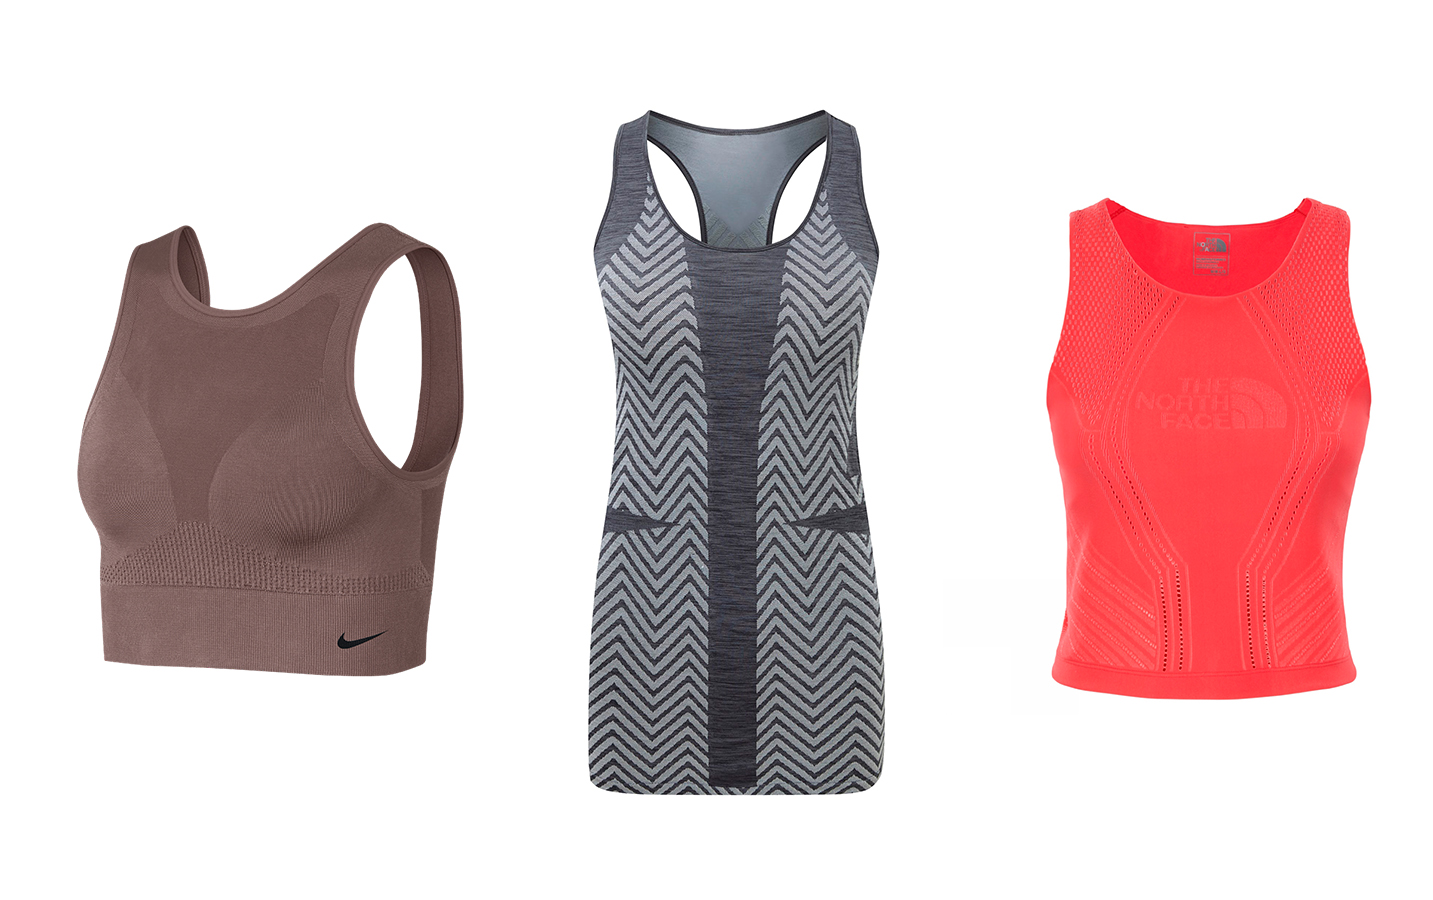 the best women s running tops for those who don t want to run in